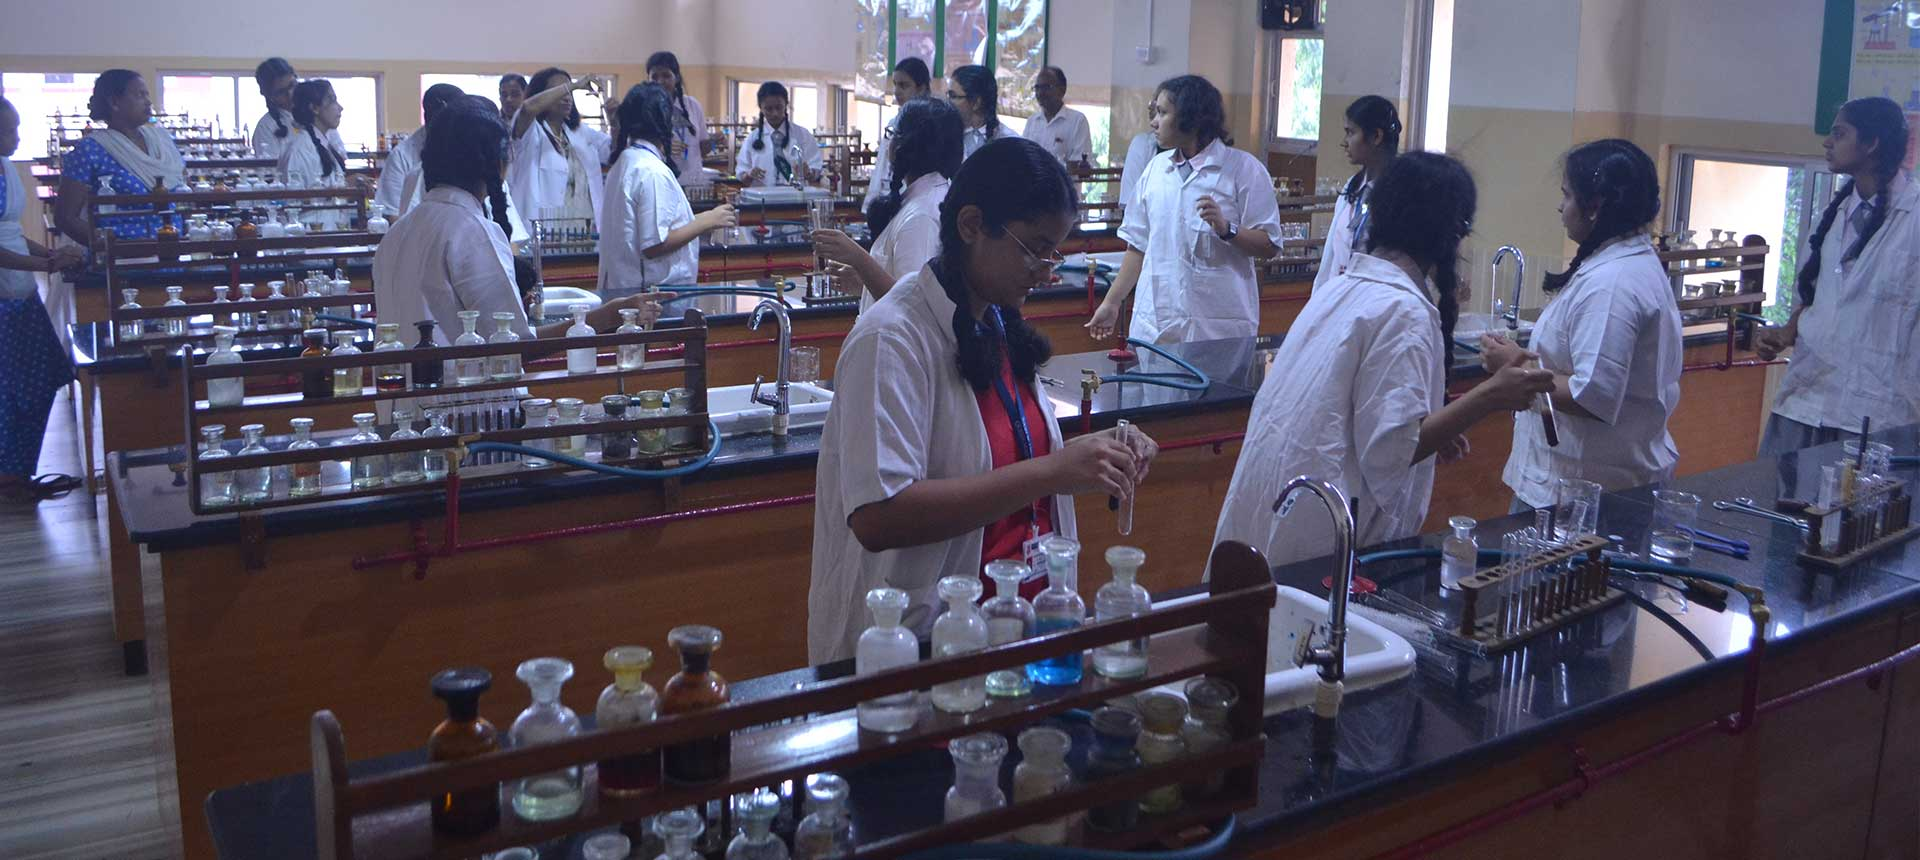 Queen Mary School Science